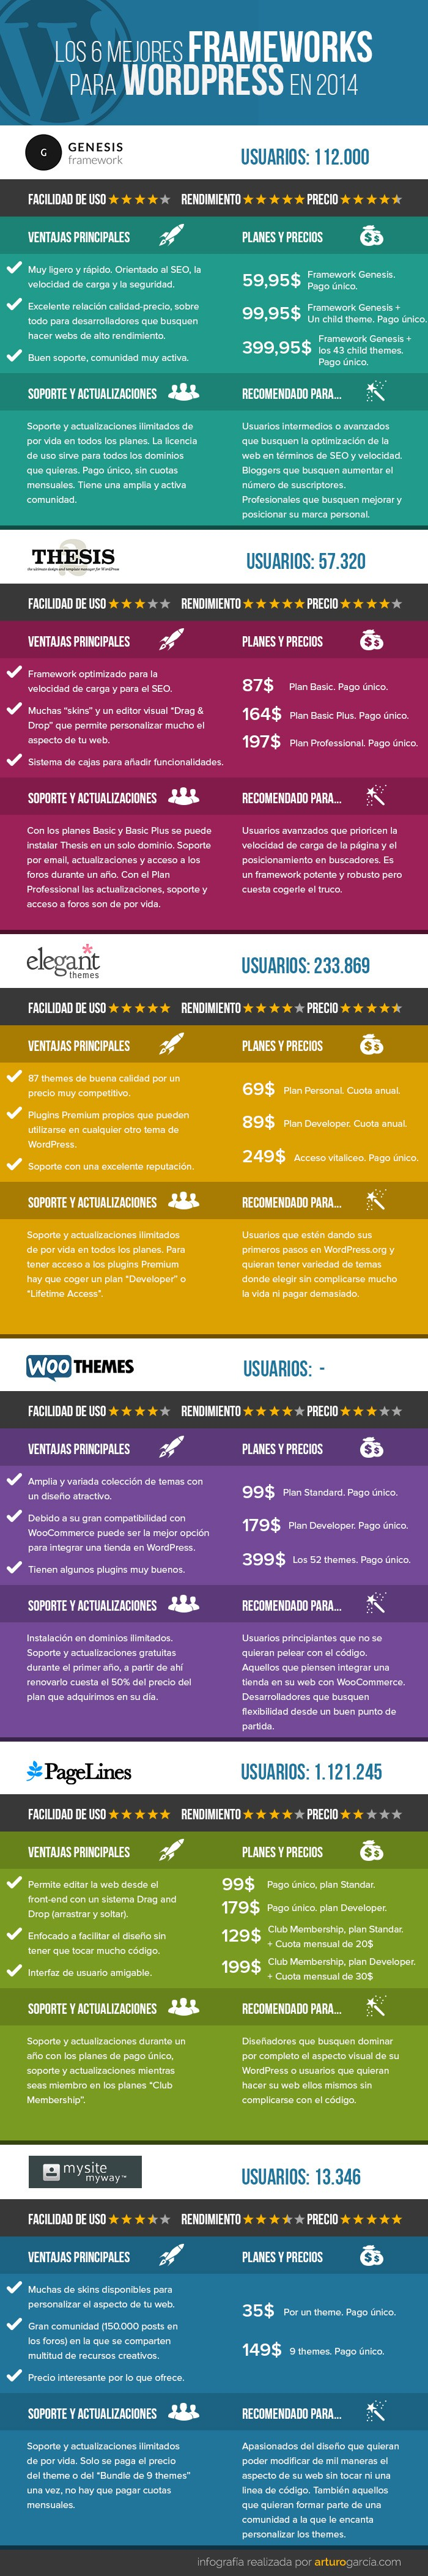 comparativa-frameworks-wordpress